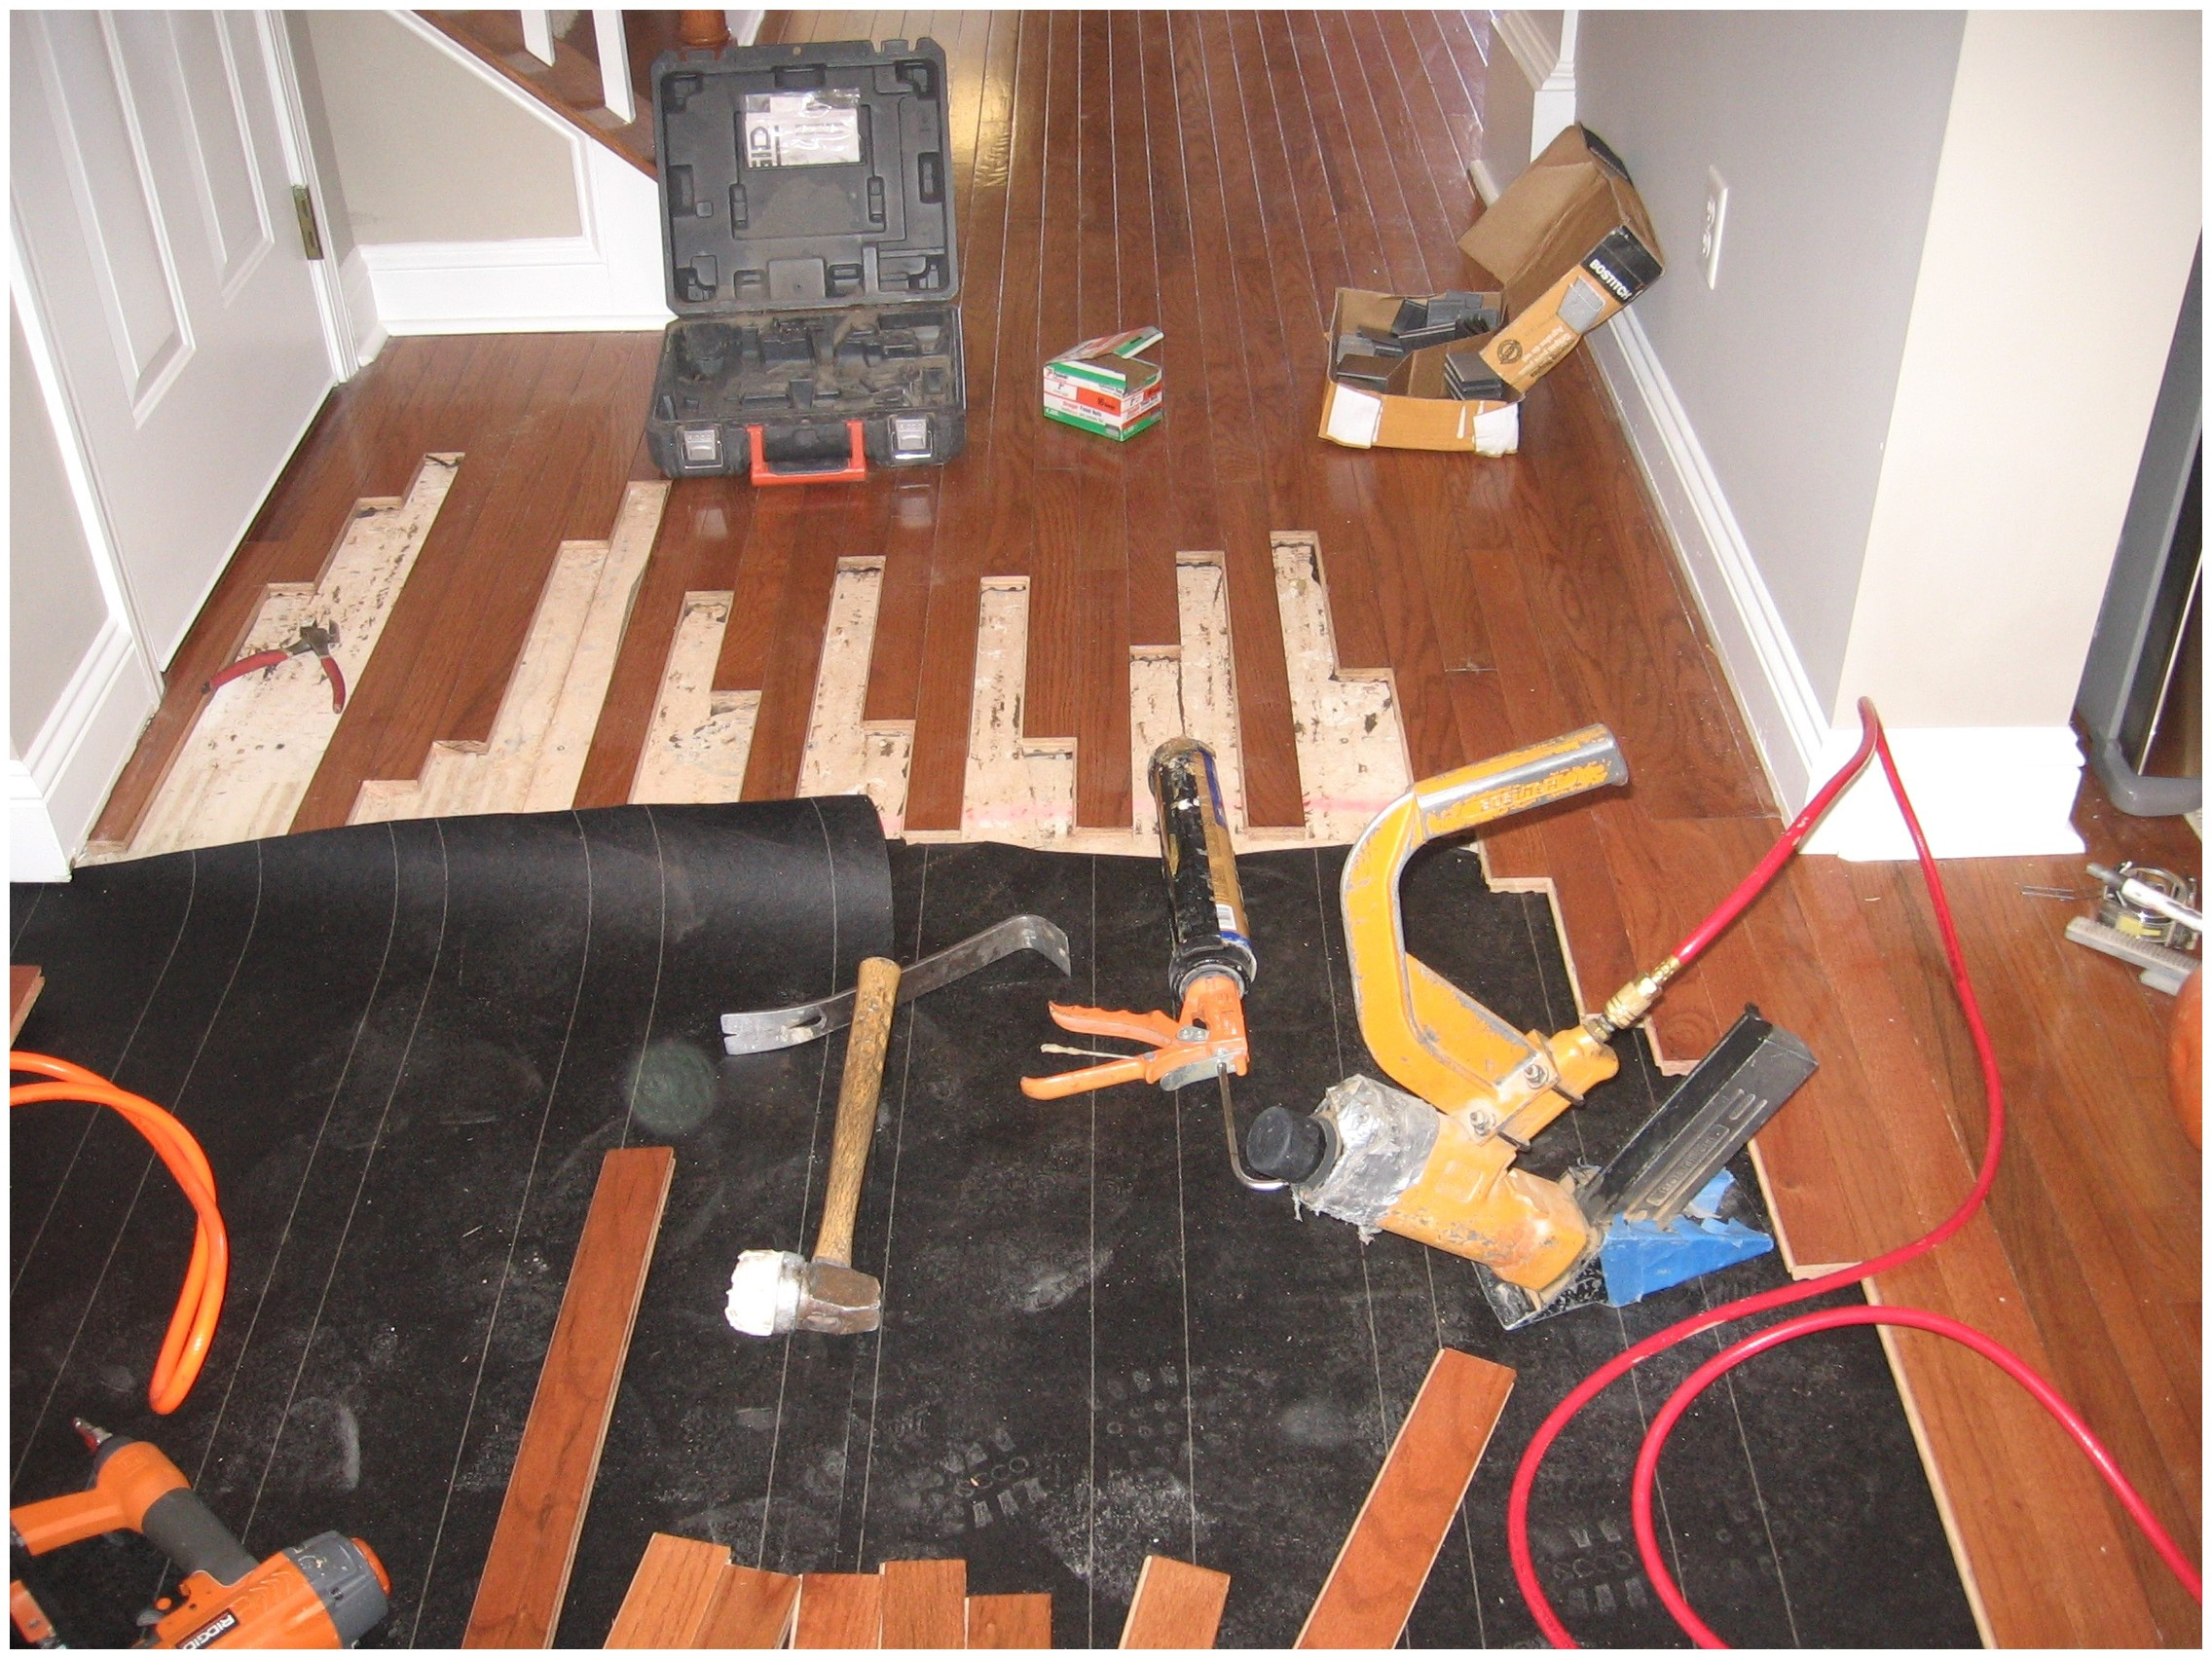 can you glue down hardwood flooring to concrete of best way to install engineered wood flooring over concrete how to regarding best way to install engineered wood flooring over concrete hardwood floor installation cost to install engineered